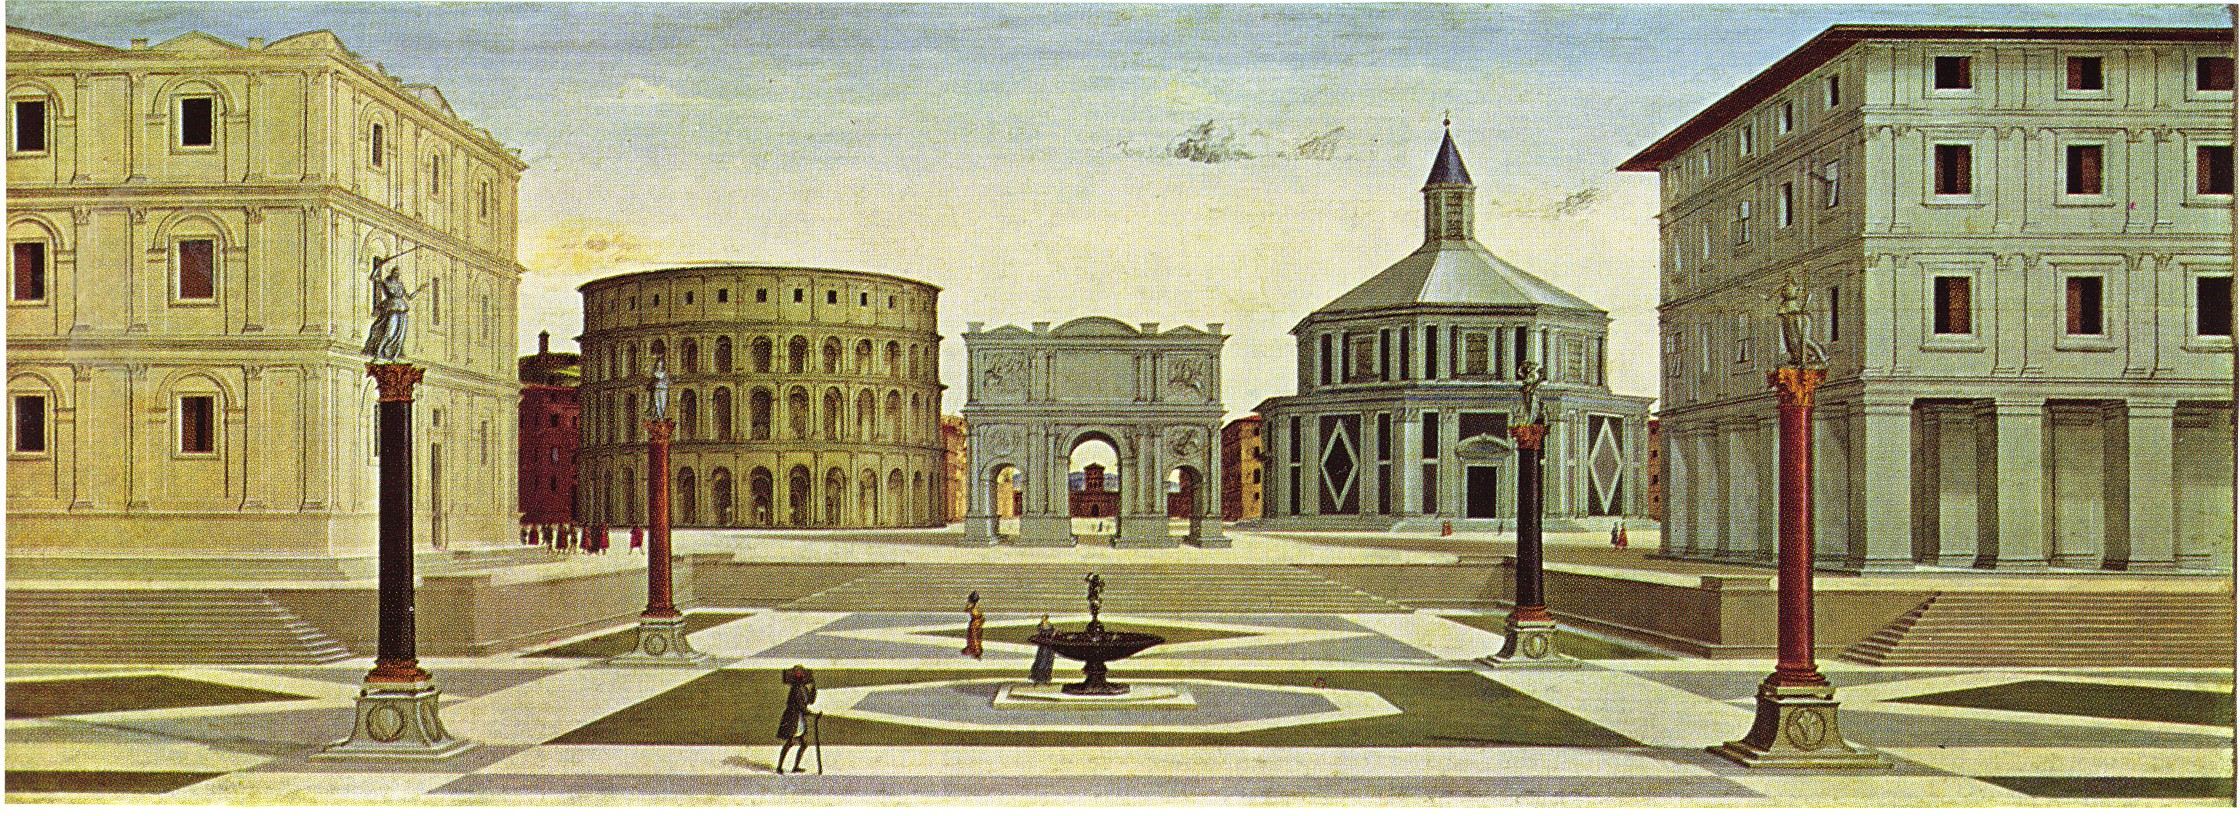 Luciano Laurana (1420 - 1479) - Perspective architecturale